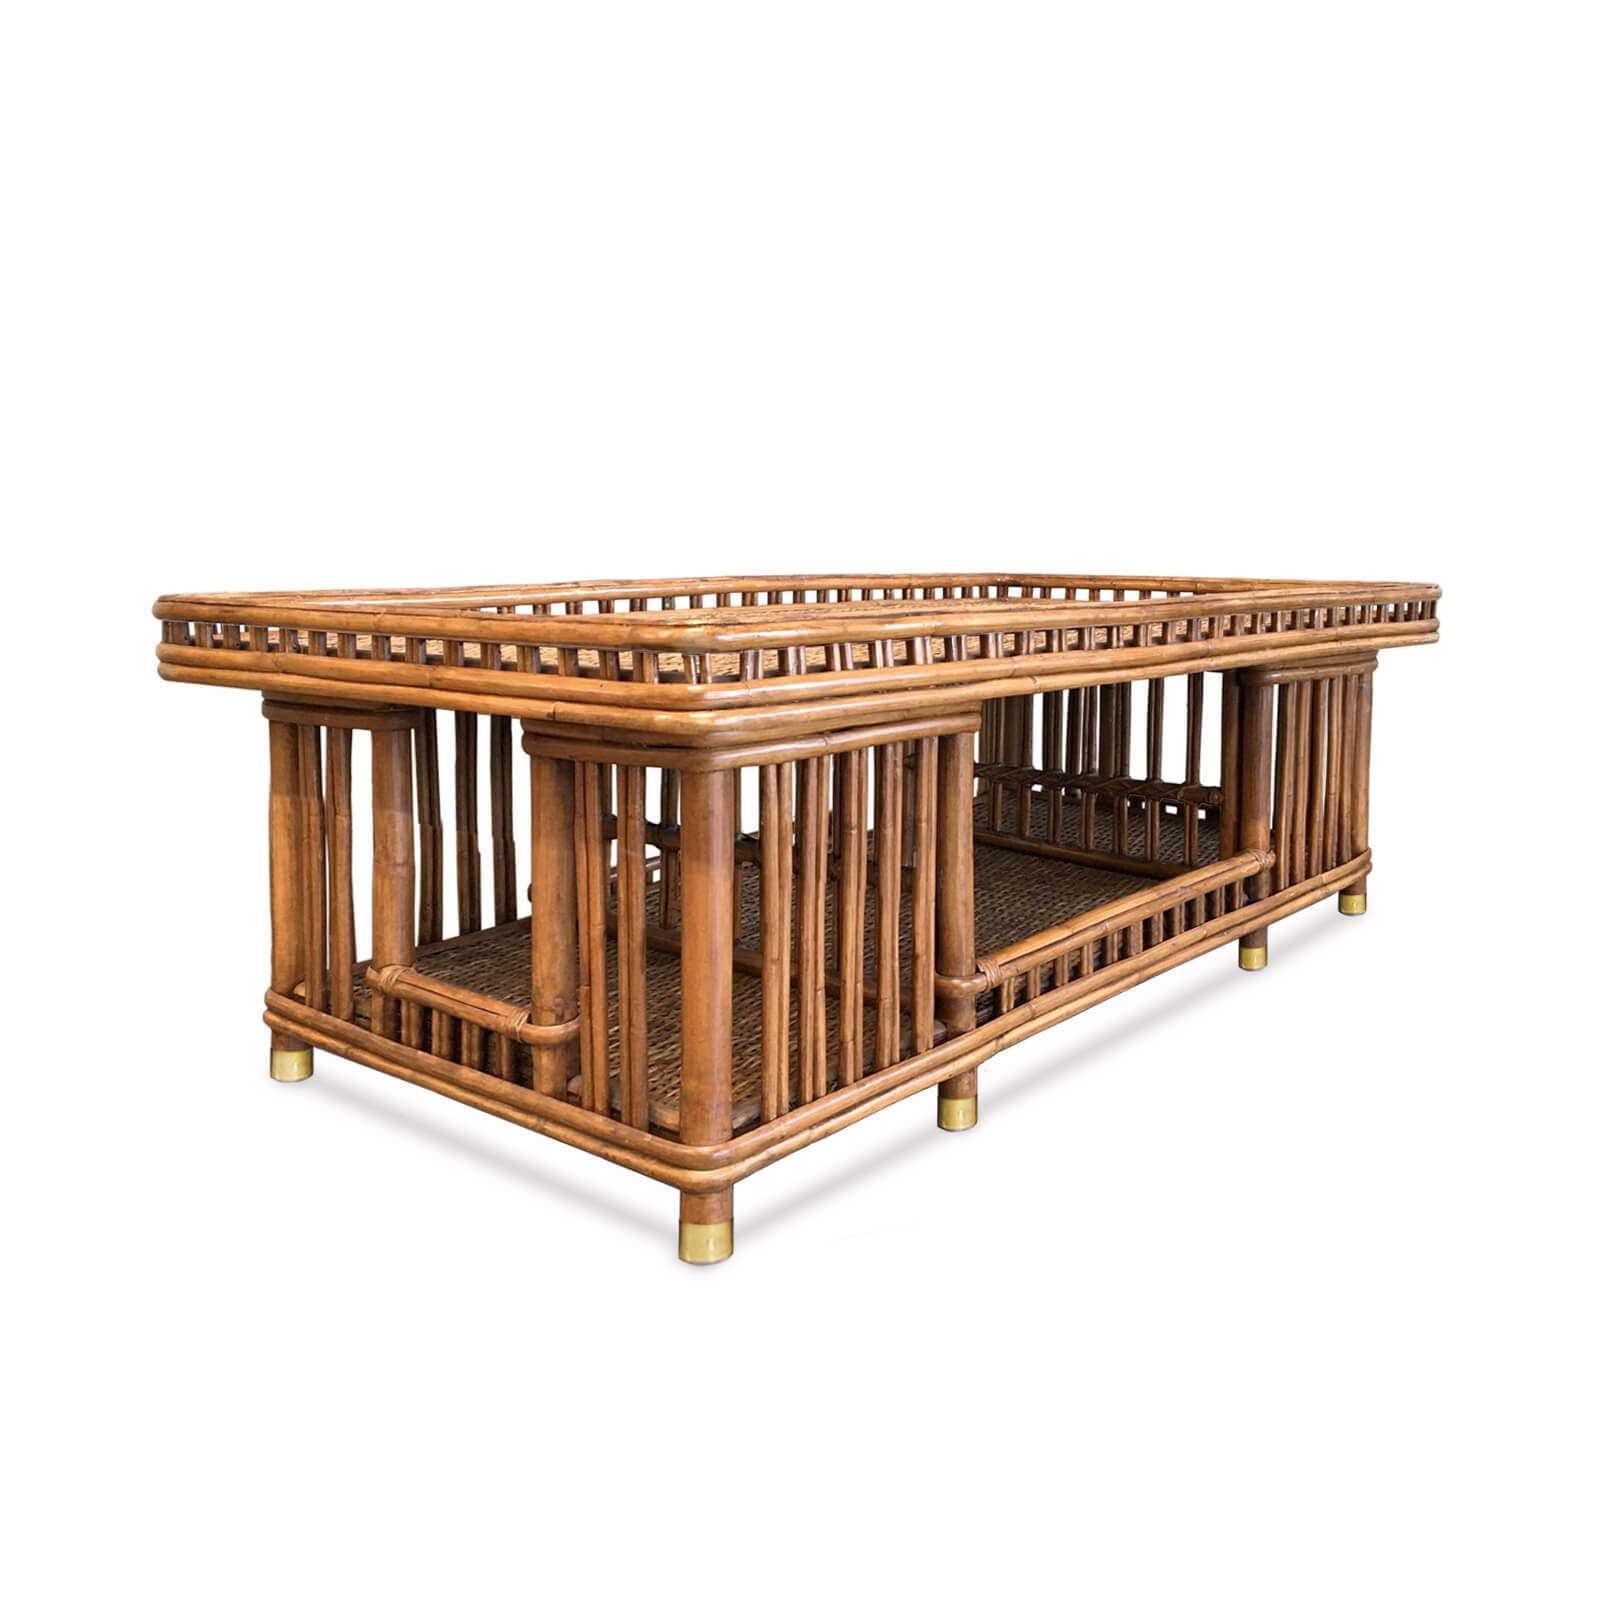 TB 449 BUNGALOW SOFA TABLE PERSPECTIVE - STUART MEMBERY HOME COLLECTION